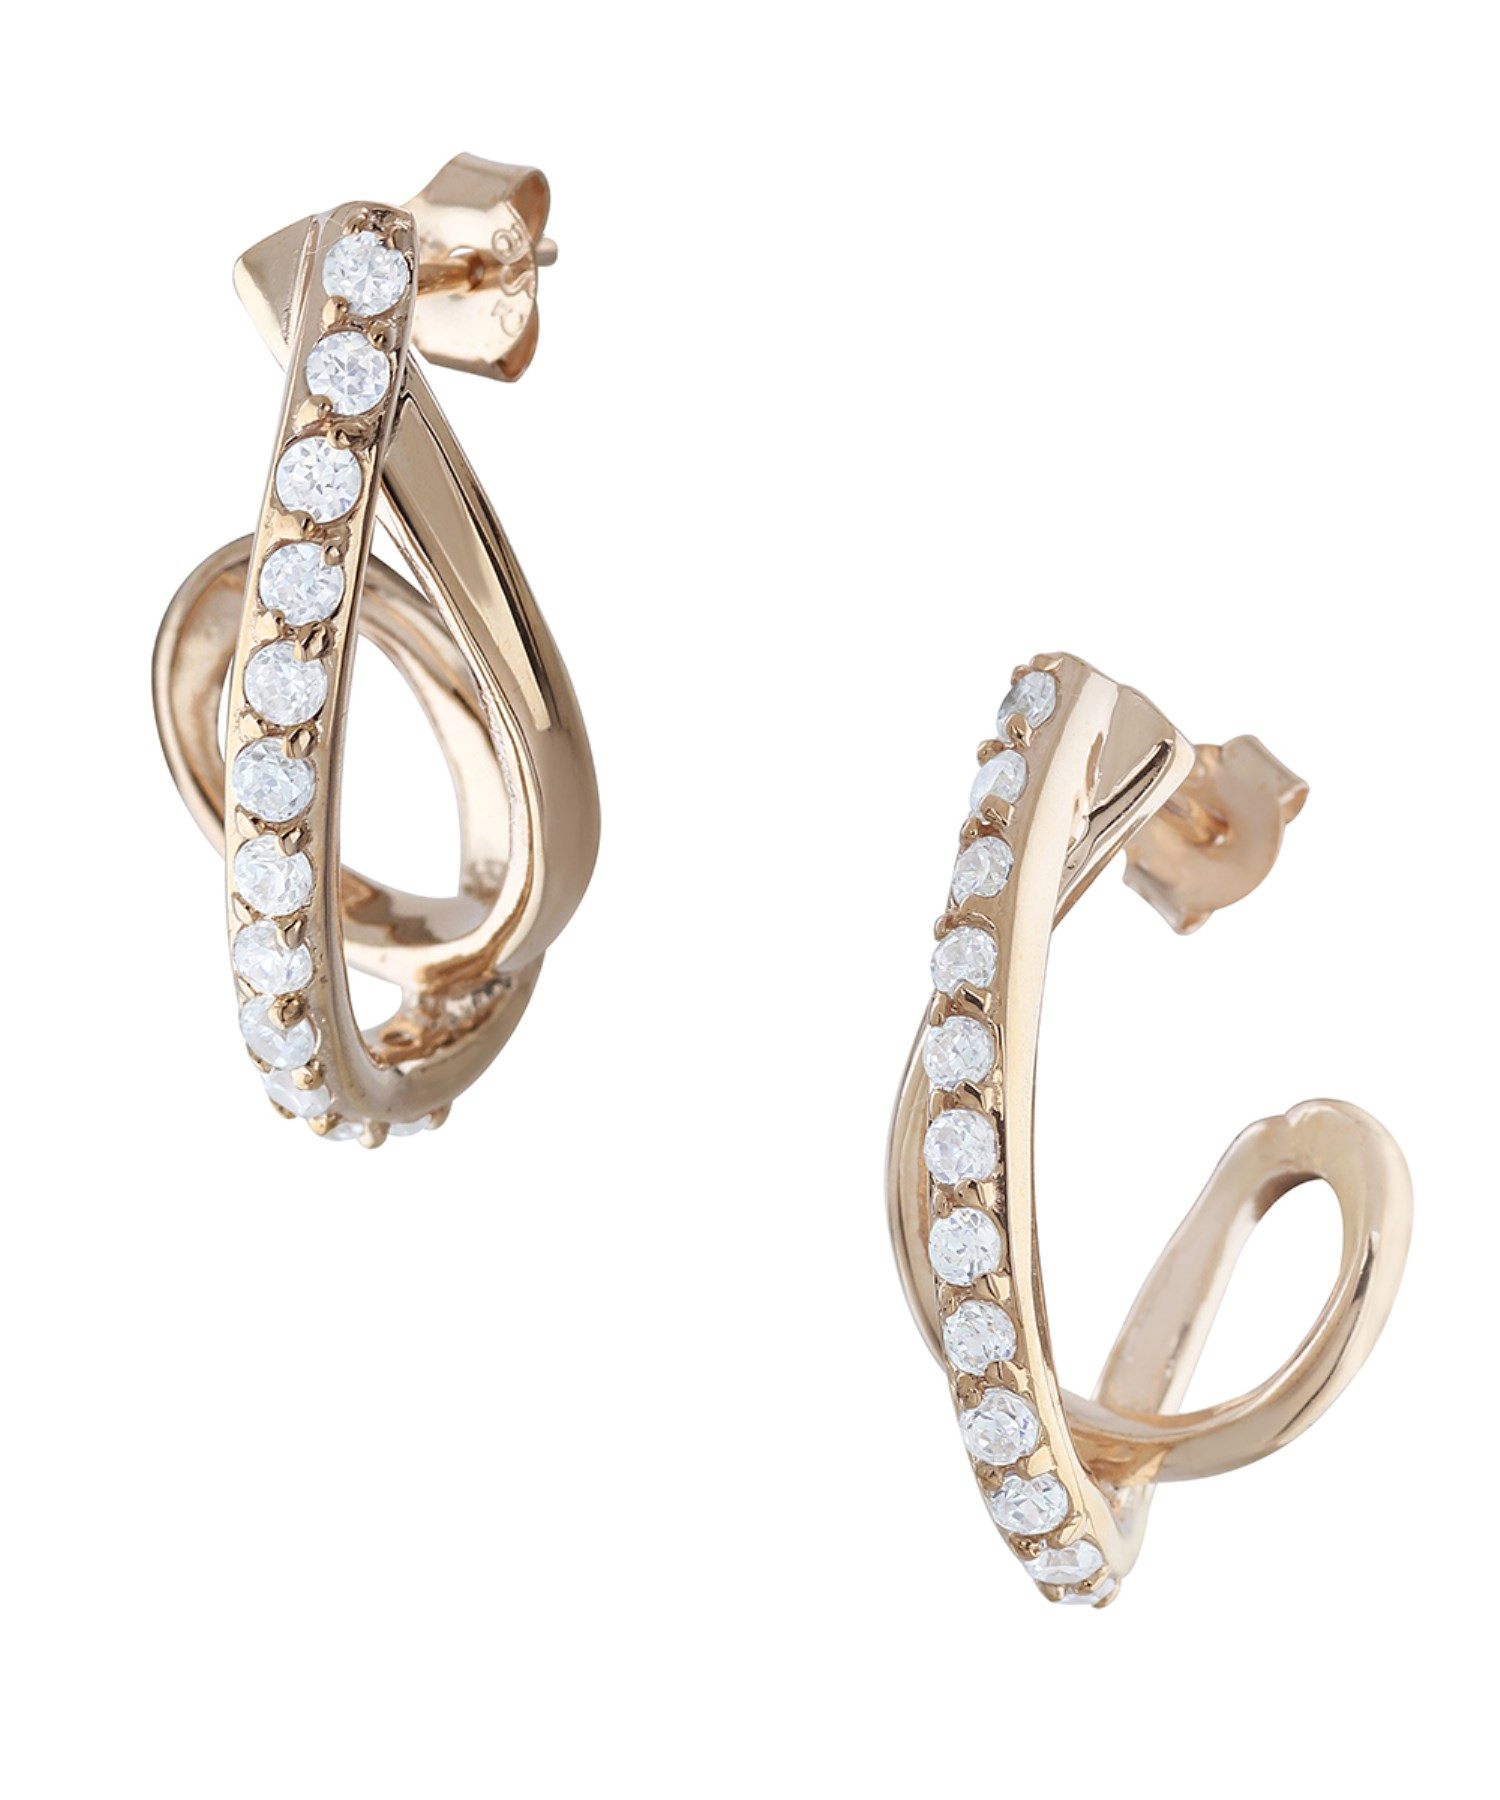 Sterling Silver Rose Gold Embraced Round Cut Simulated Diamond Twisted J Hoop Earrings